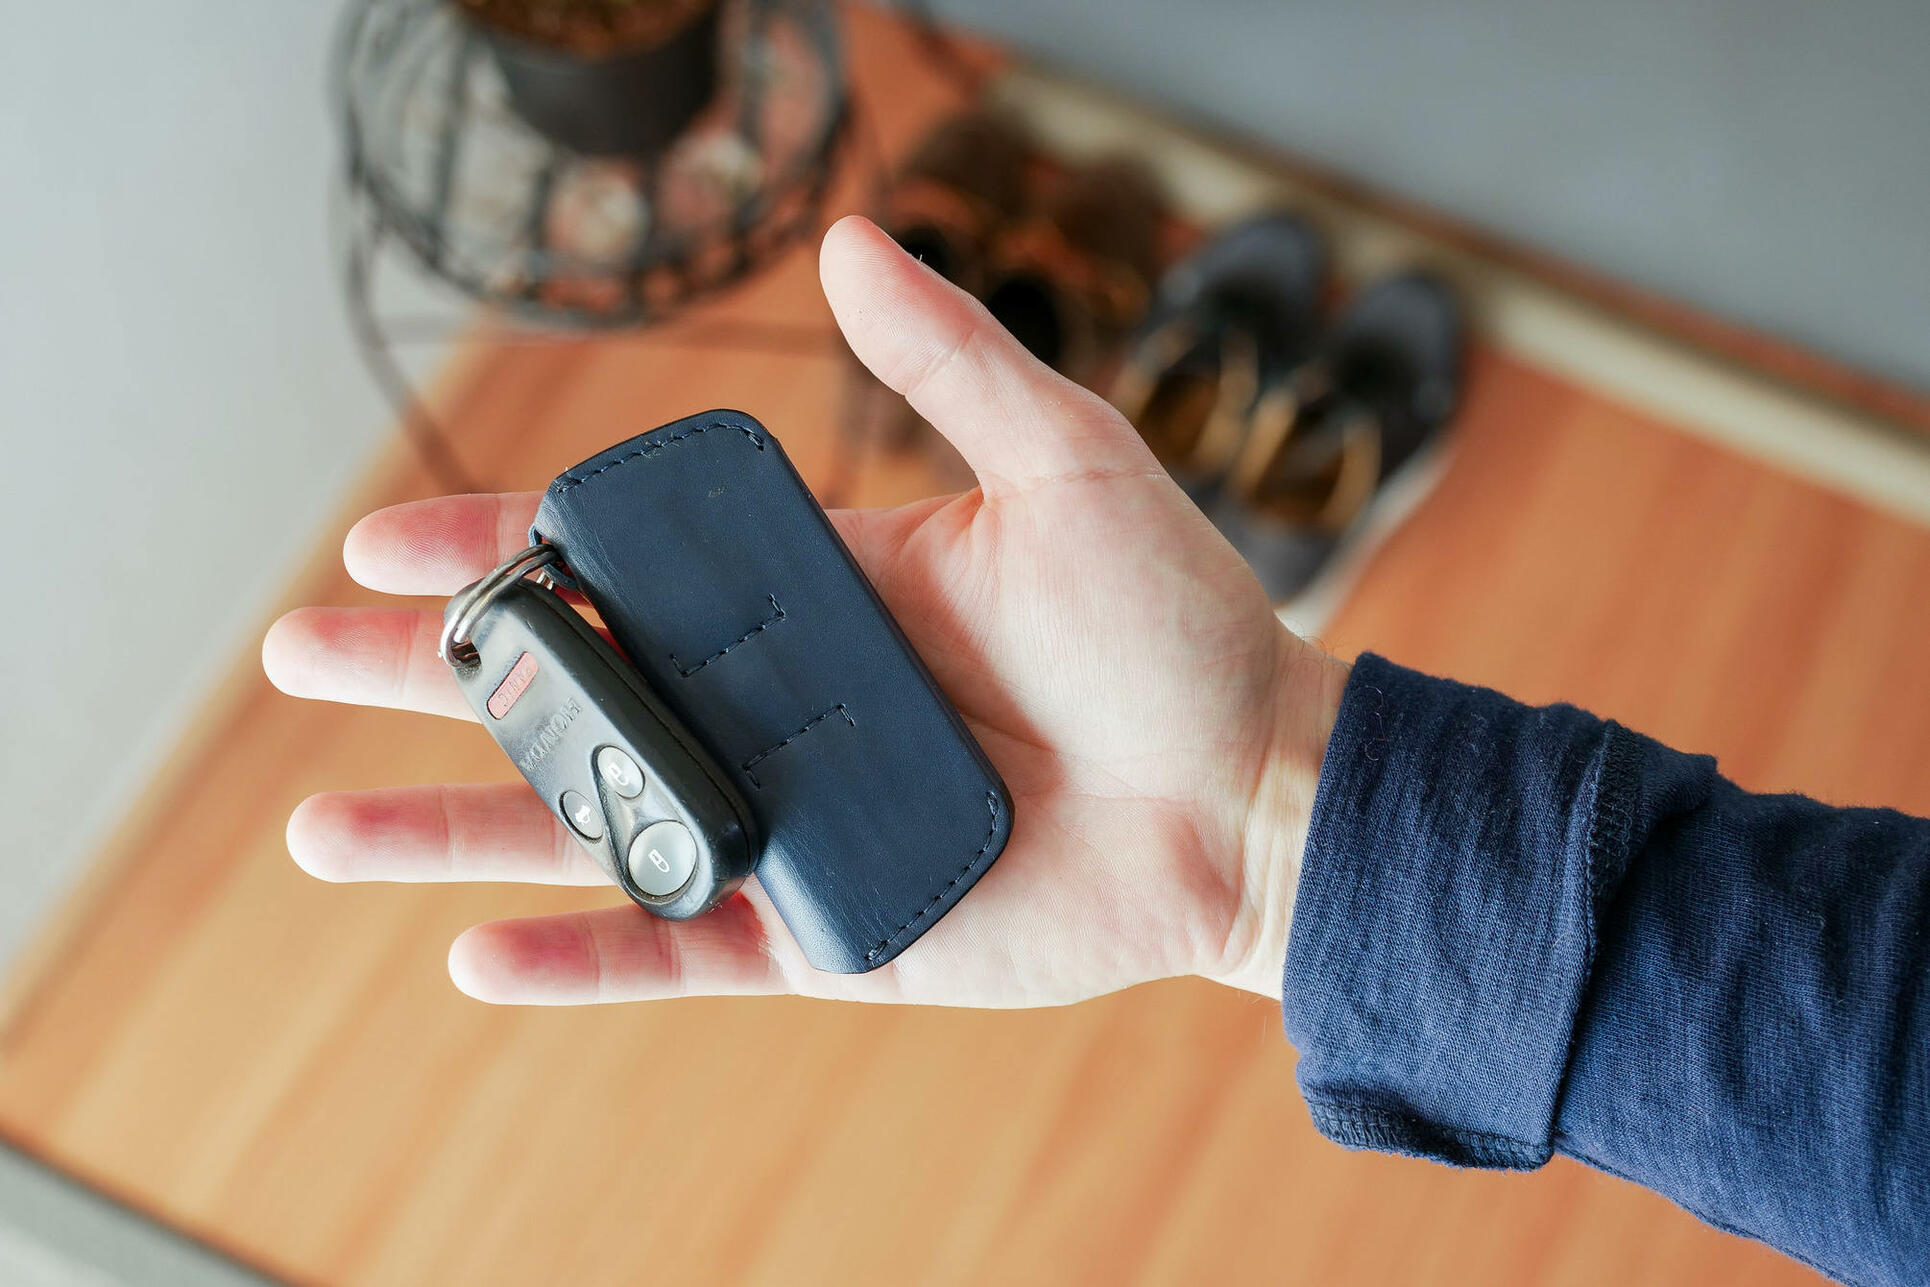 Bellroy Key Cover Plus closed